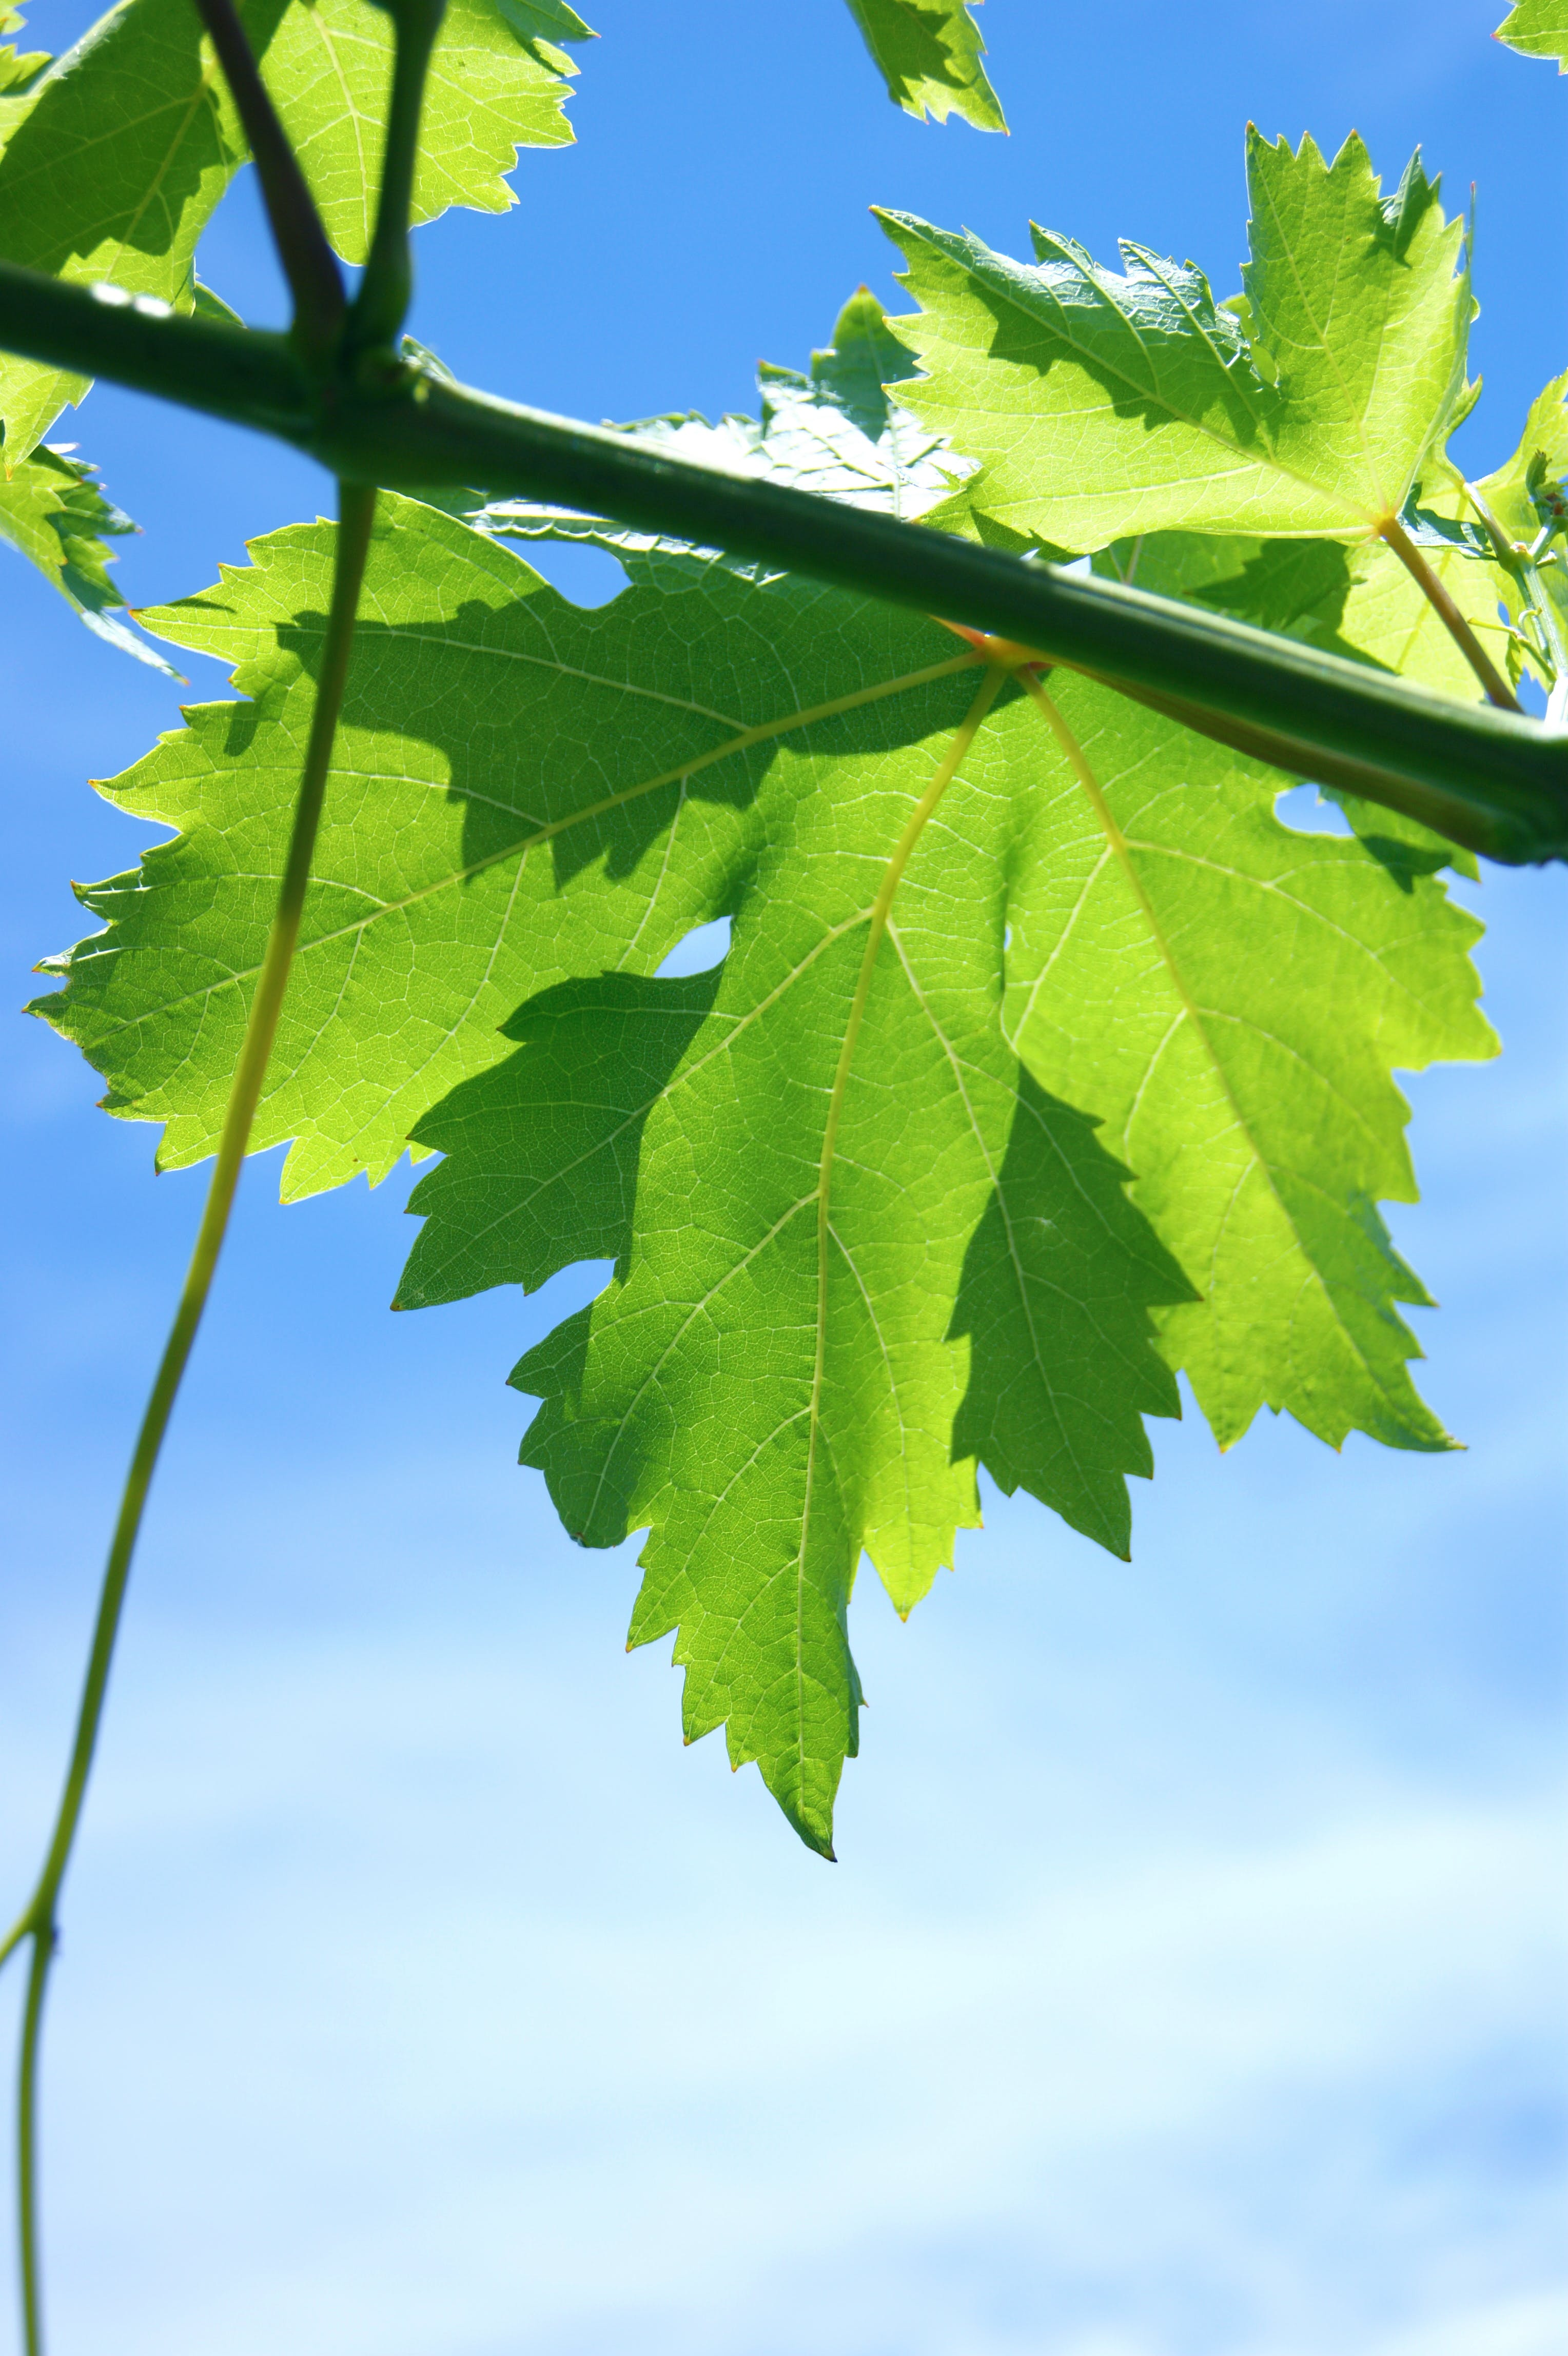 Free stock photo of leaf, green, blue sky, portugal